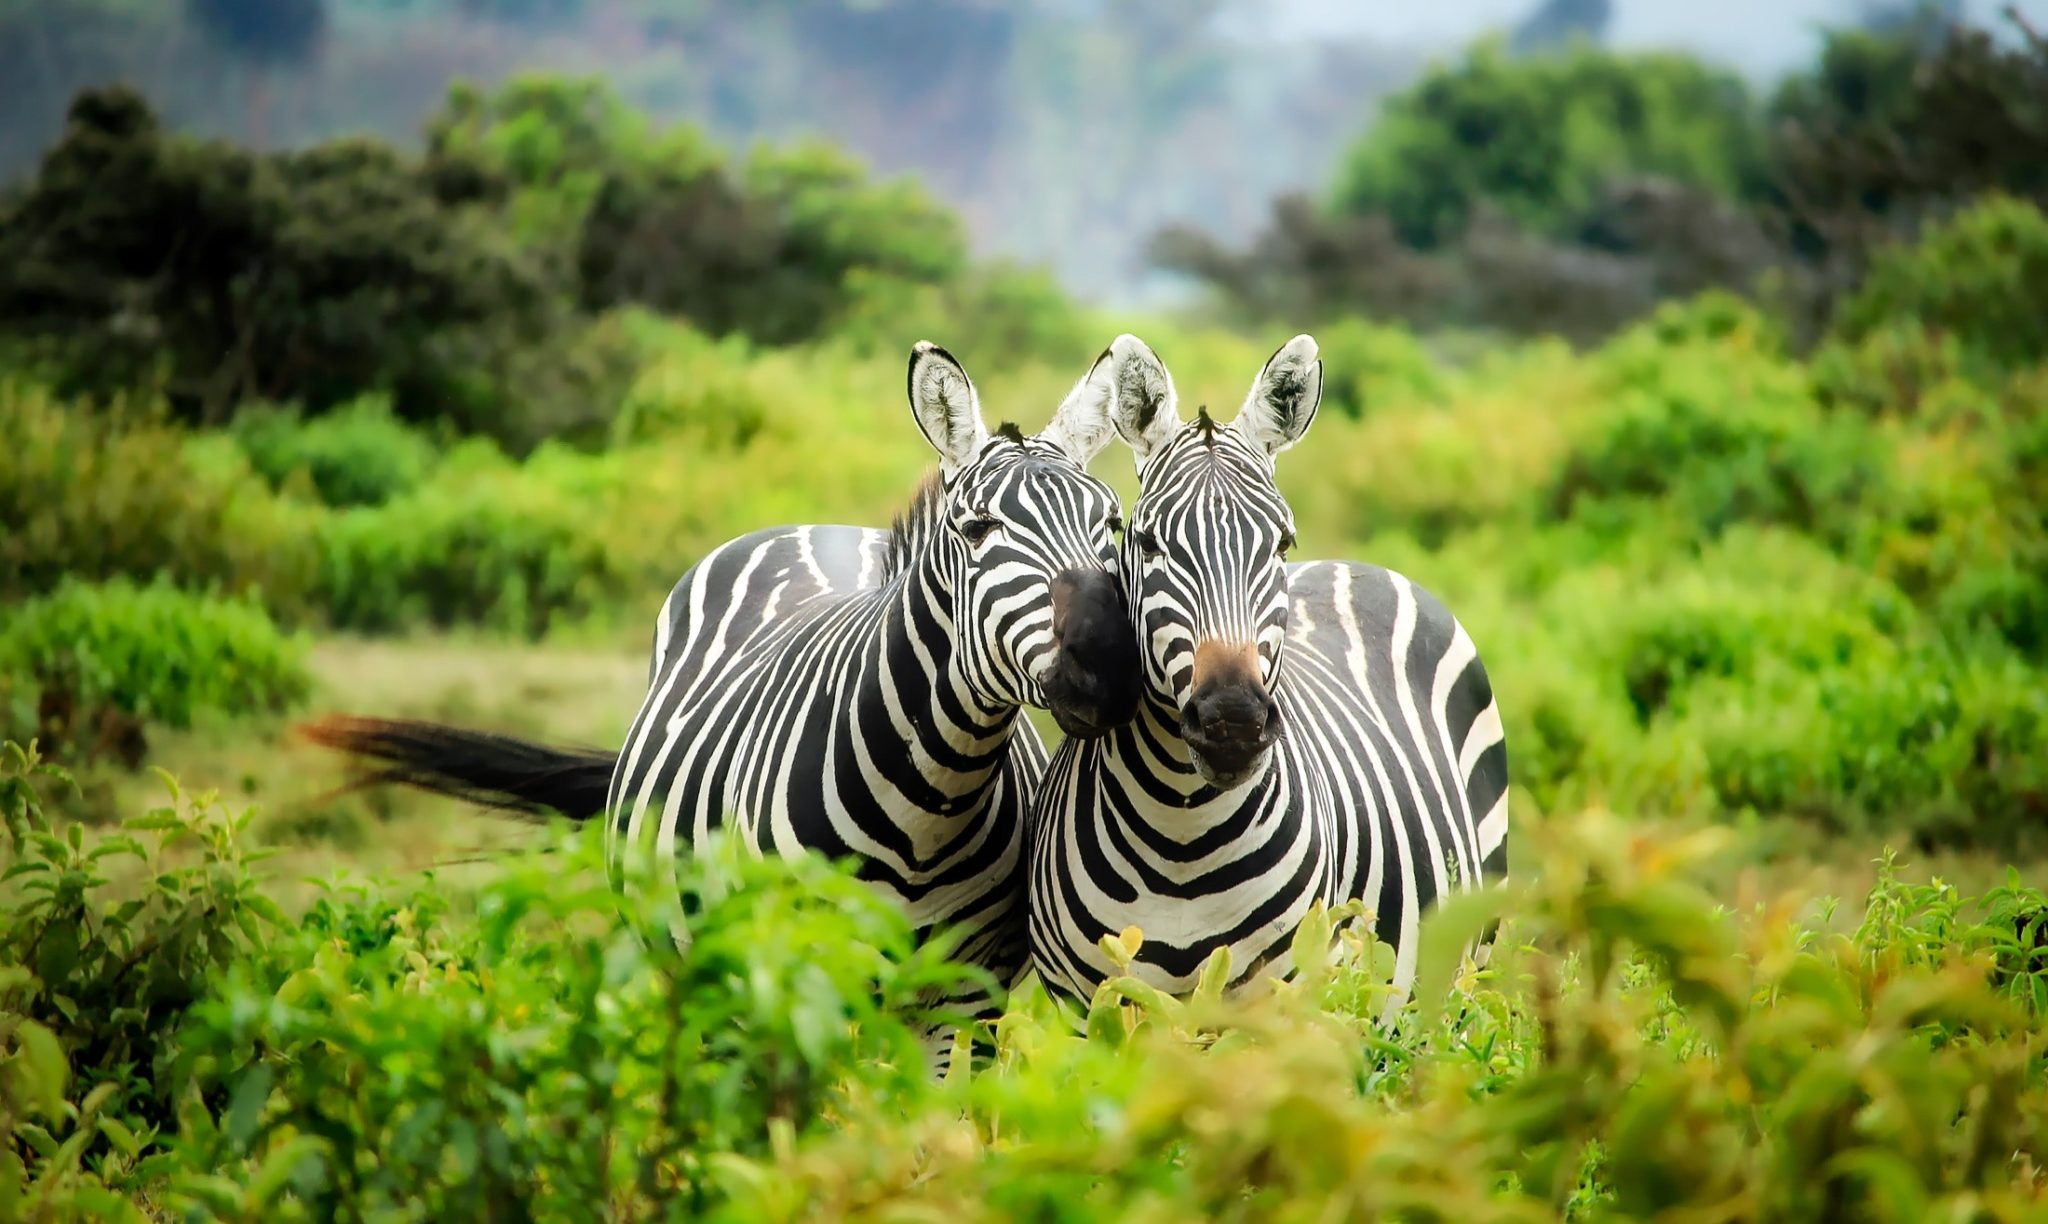 Reasons to travel to Africa, animals conservation